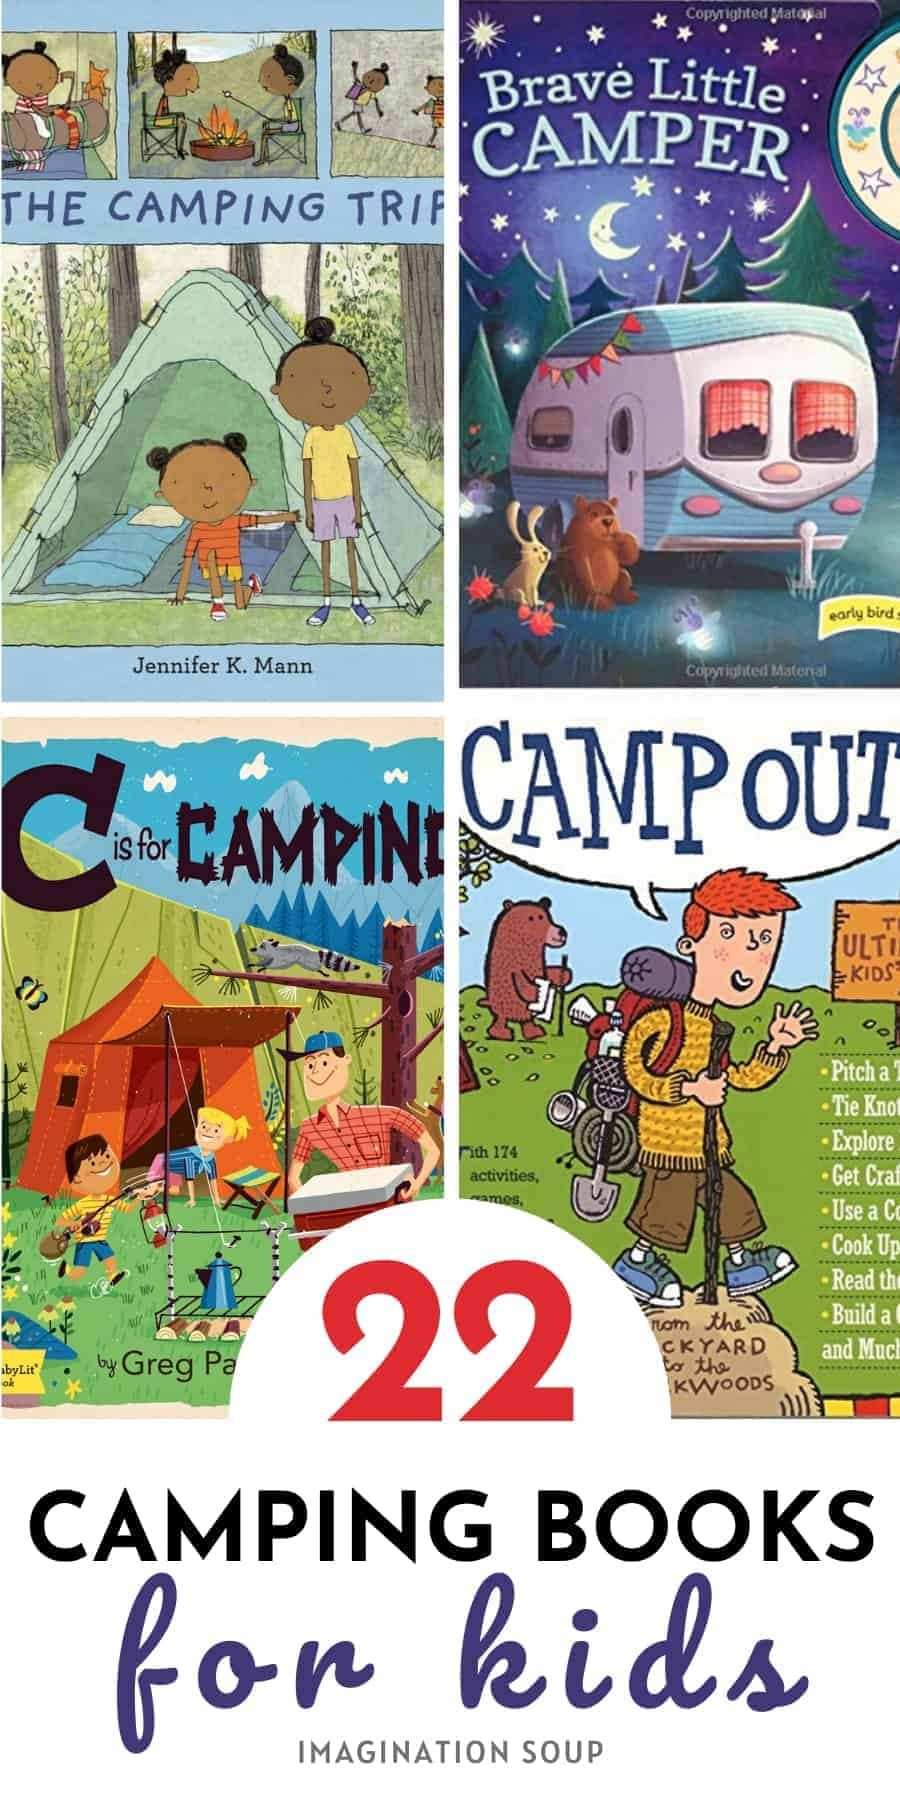 22 CAMPING BOOKS FOR KIDS